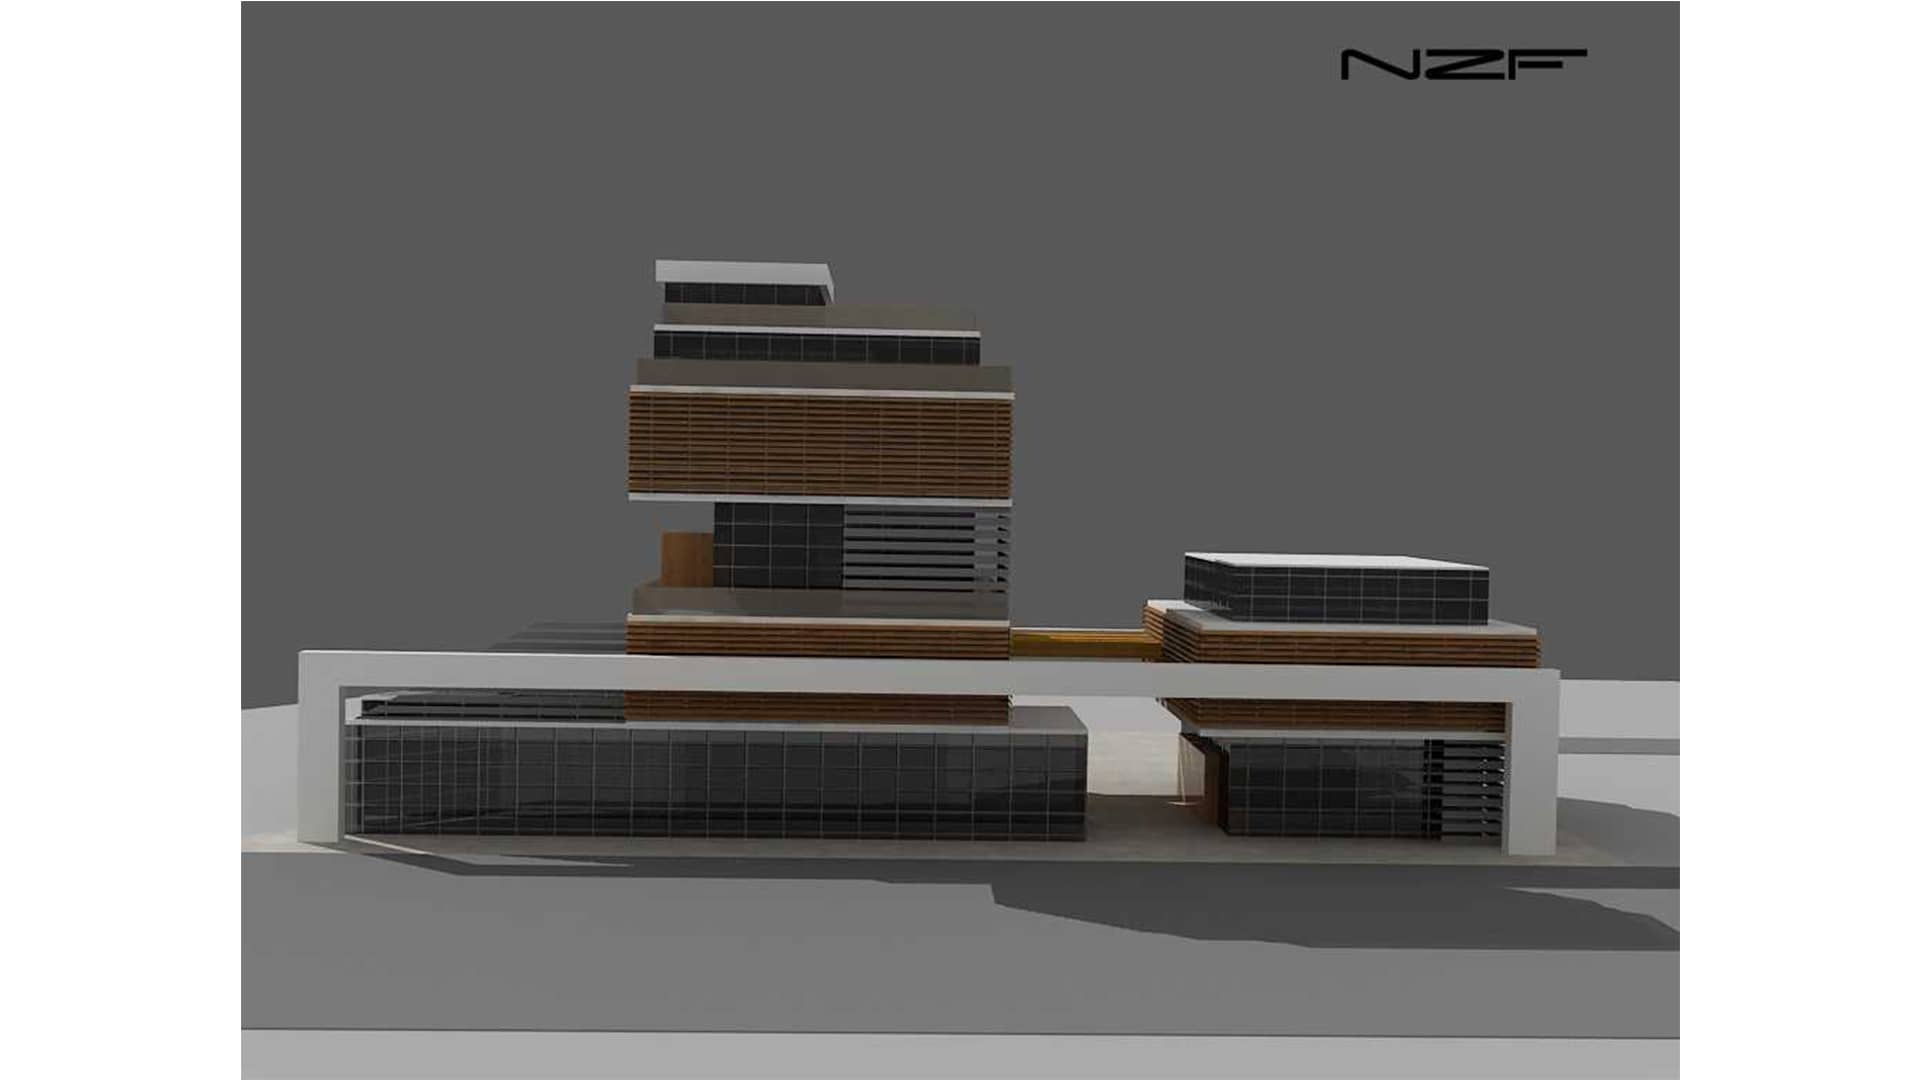 nzf-bank-project-3